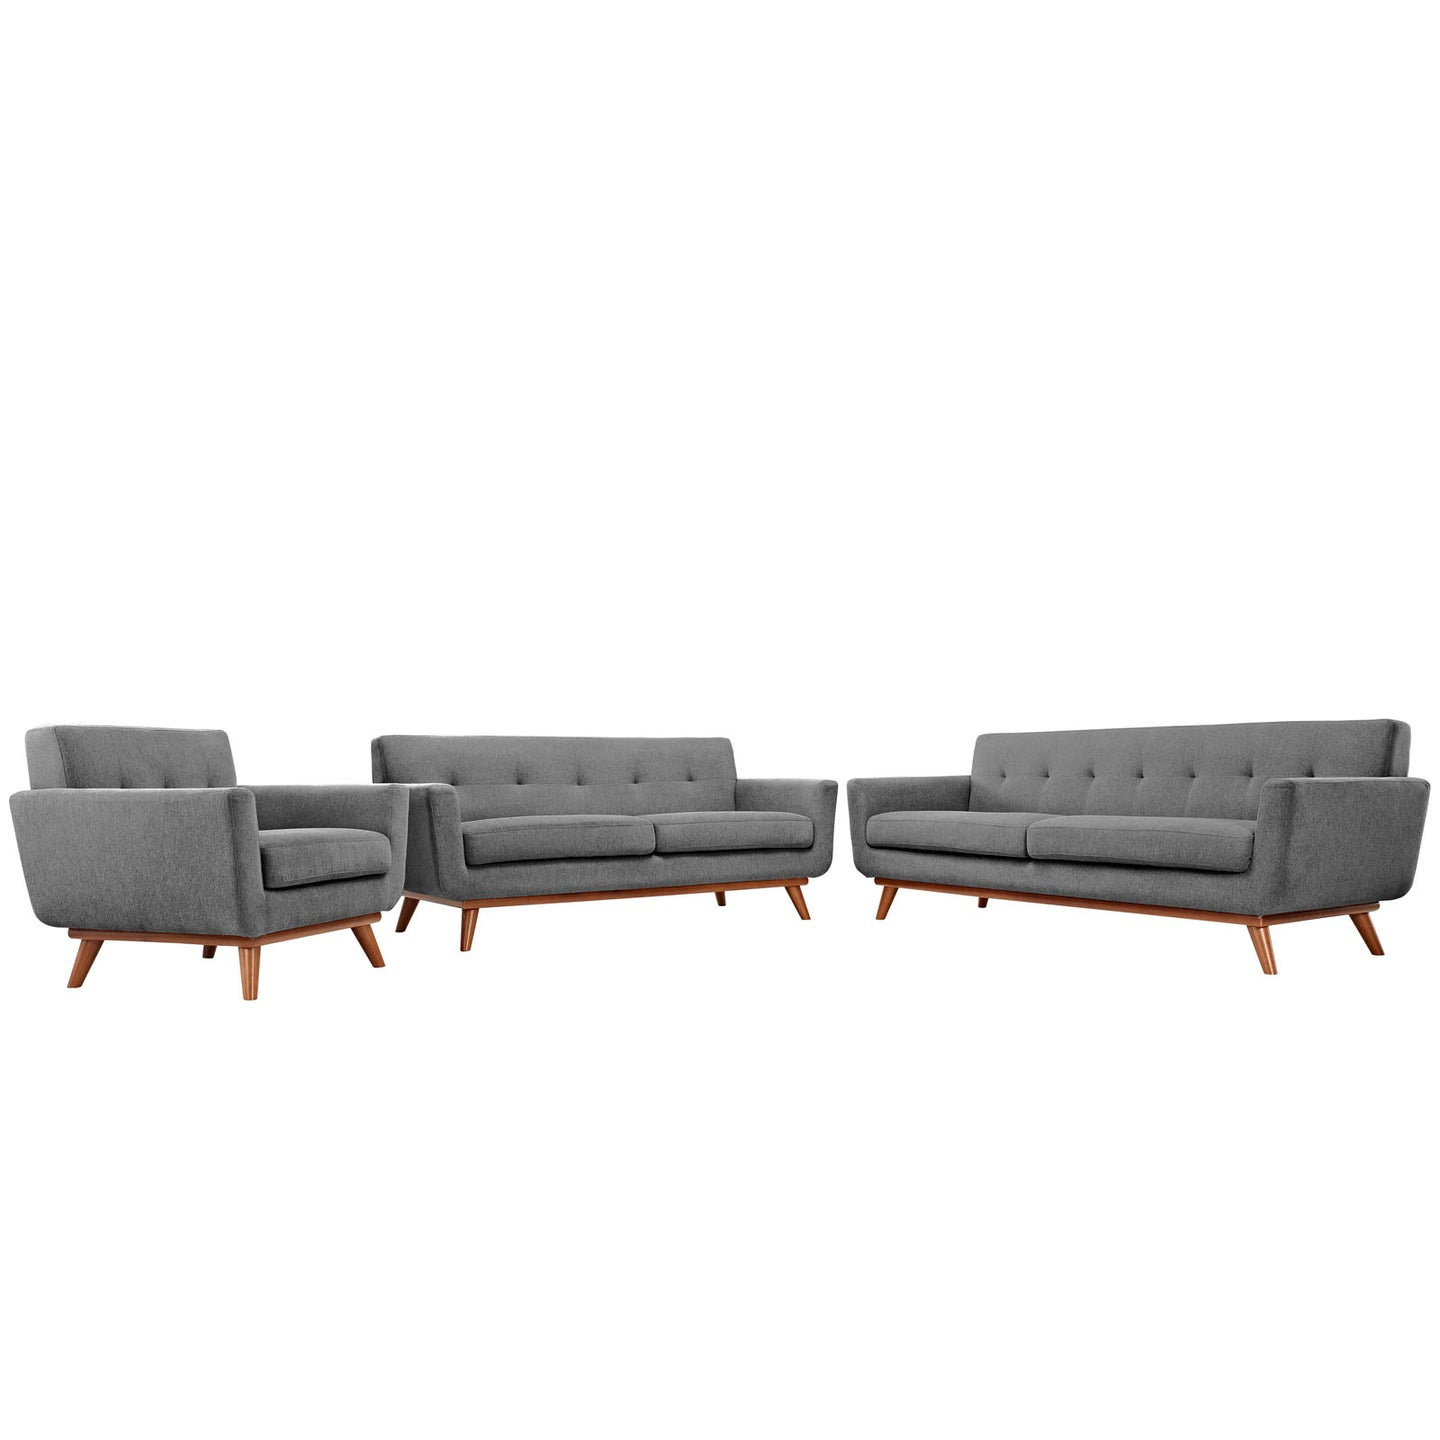 Modway Furniture Modern Engage Sofa Loveseat and Armchair Set of 3 - Minimal and Modern